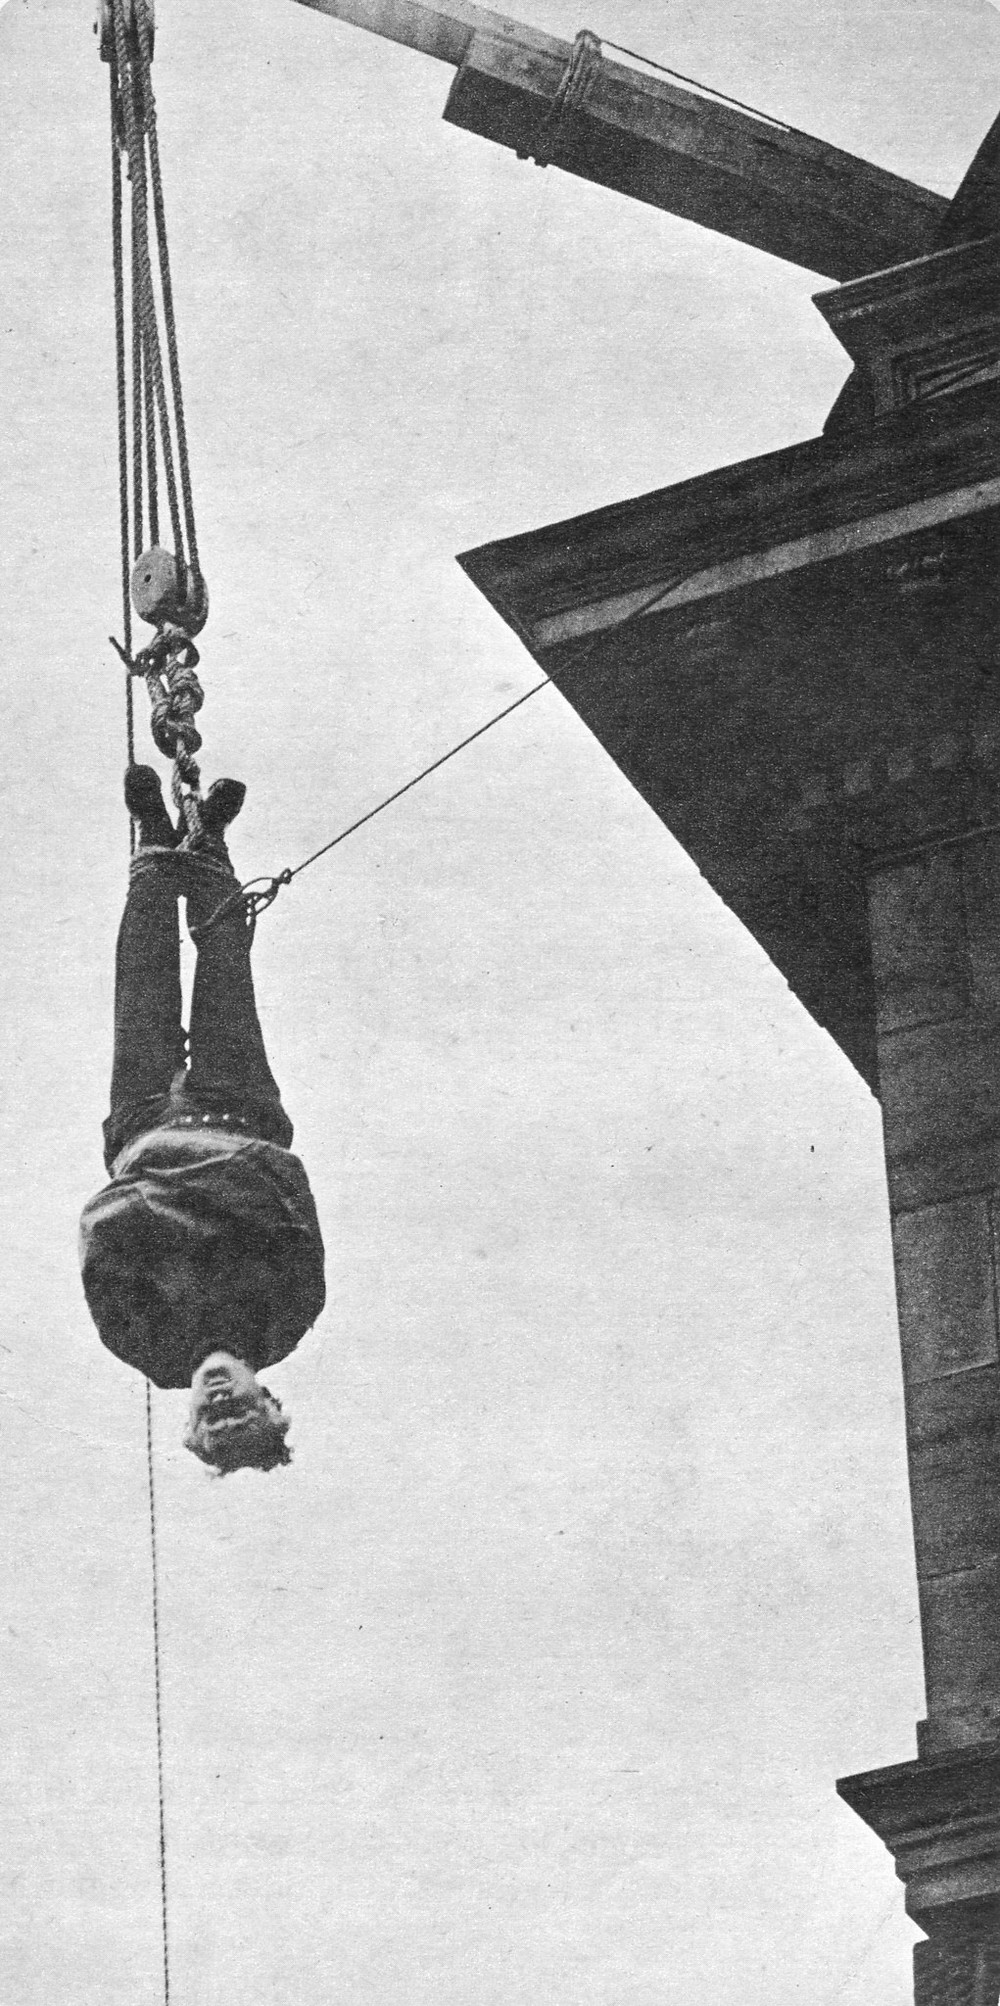 Harry Houdini hanging upside down for a stunt